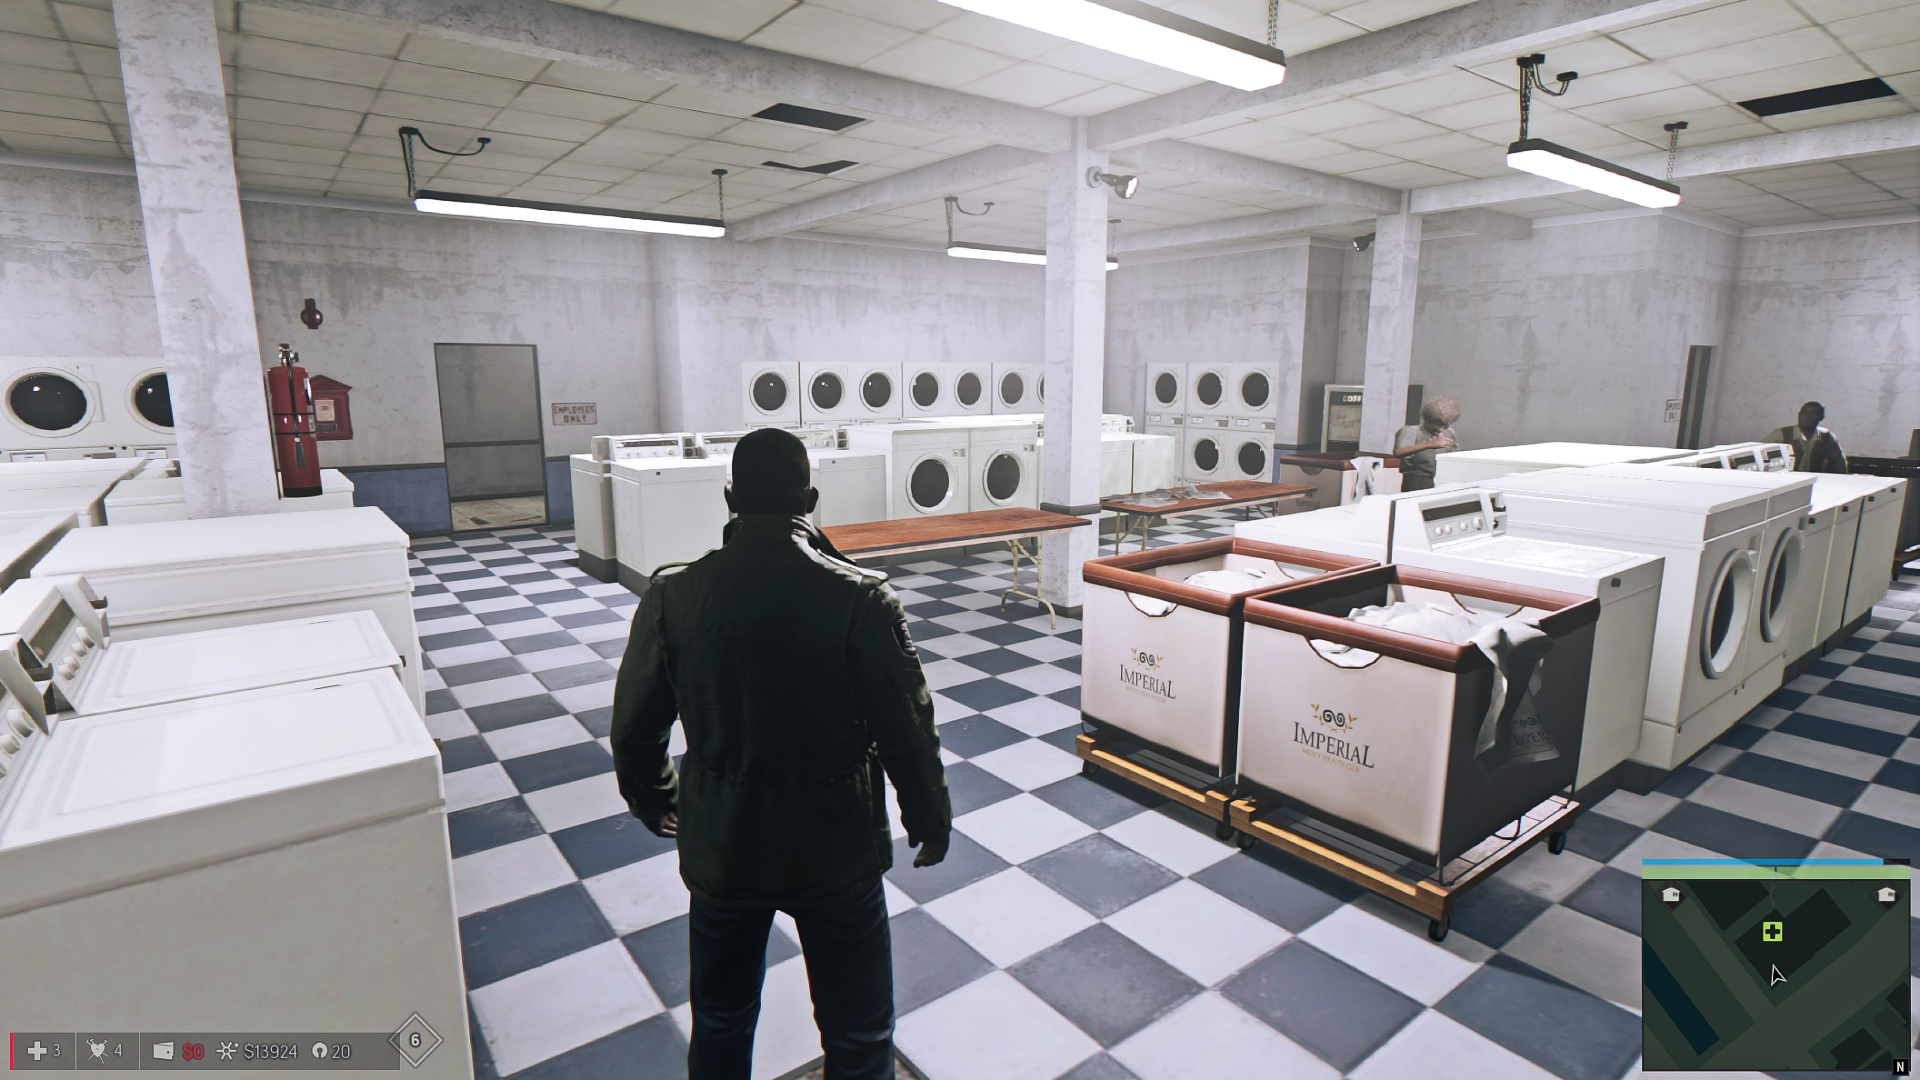 [PC] [ReShade Preset] – CLARITY – for Mafia III by BaSe